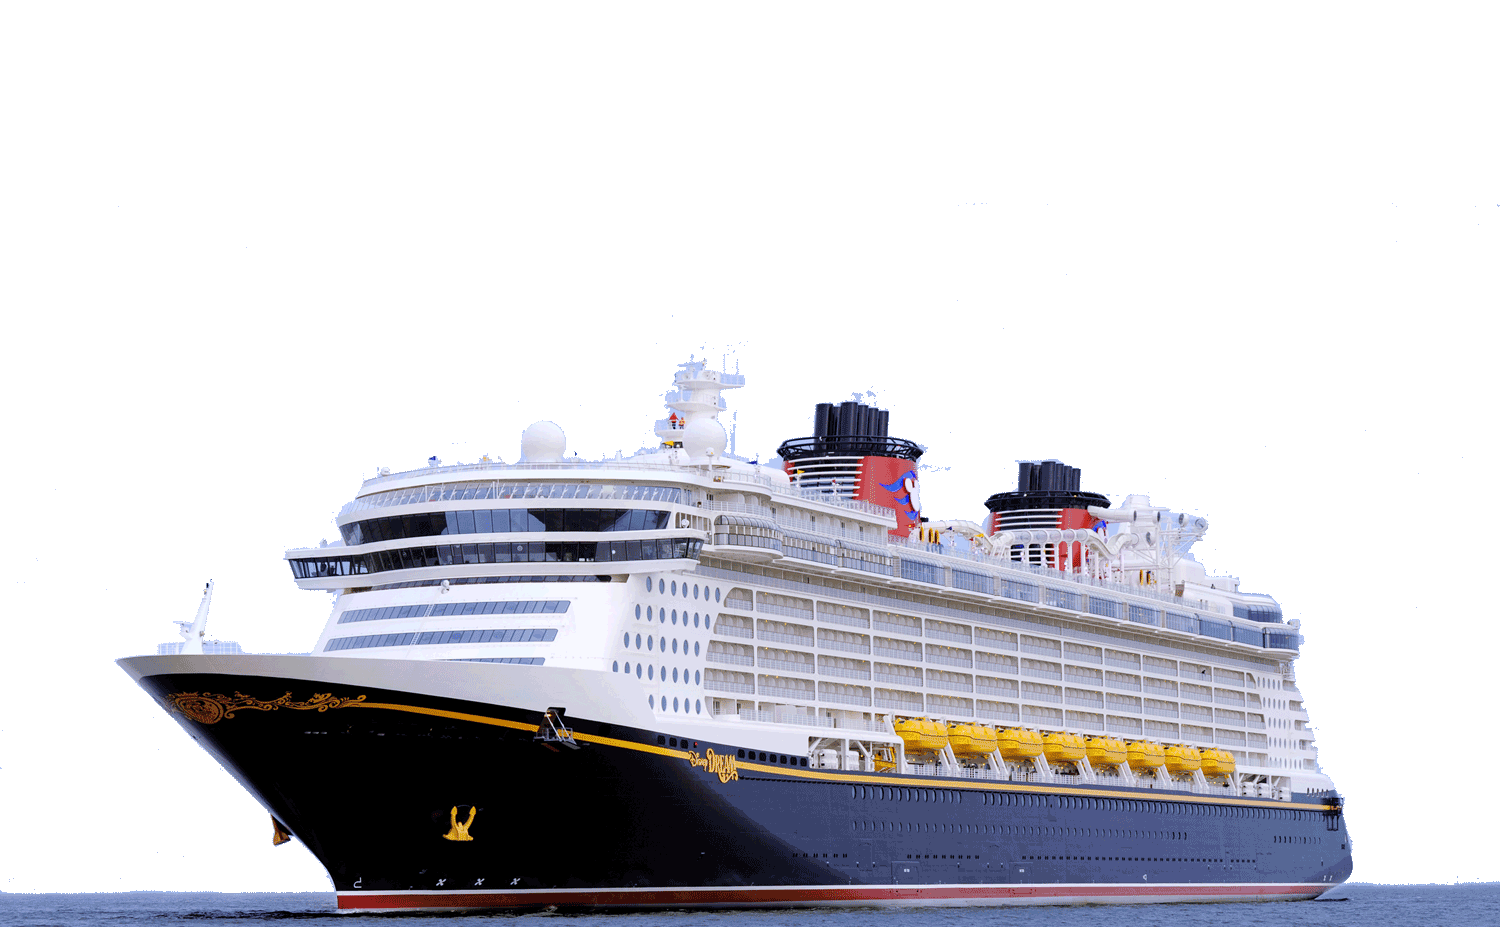 Dreaming of a Disney Cruise?